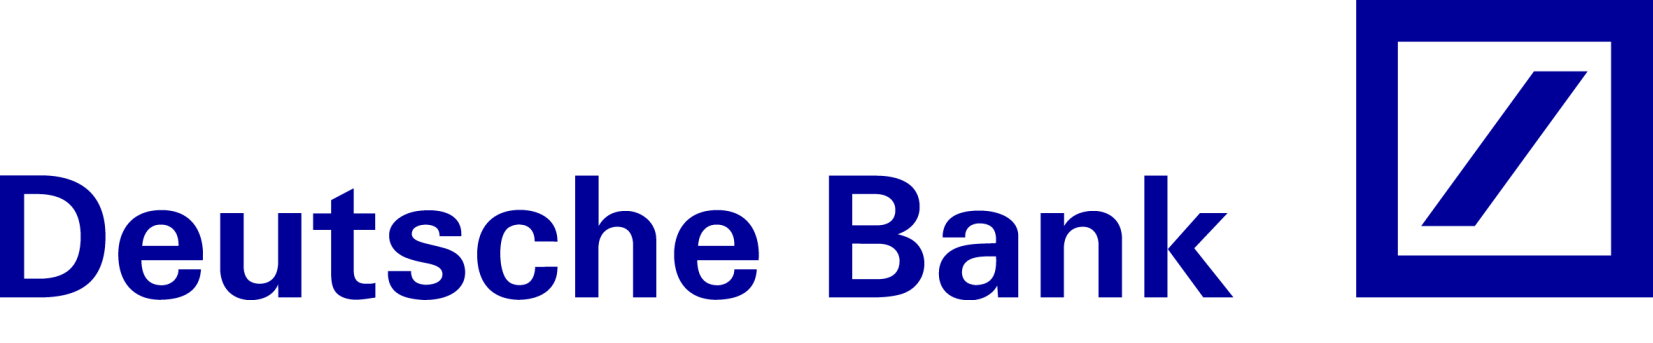 Deutsche Bank Ag Rating Reiterated By Bankhaus Lampe Dbk Ticker Report